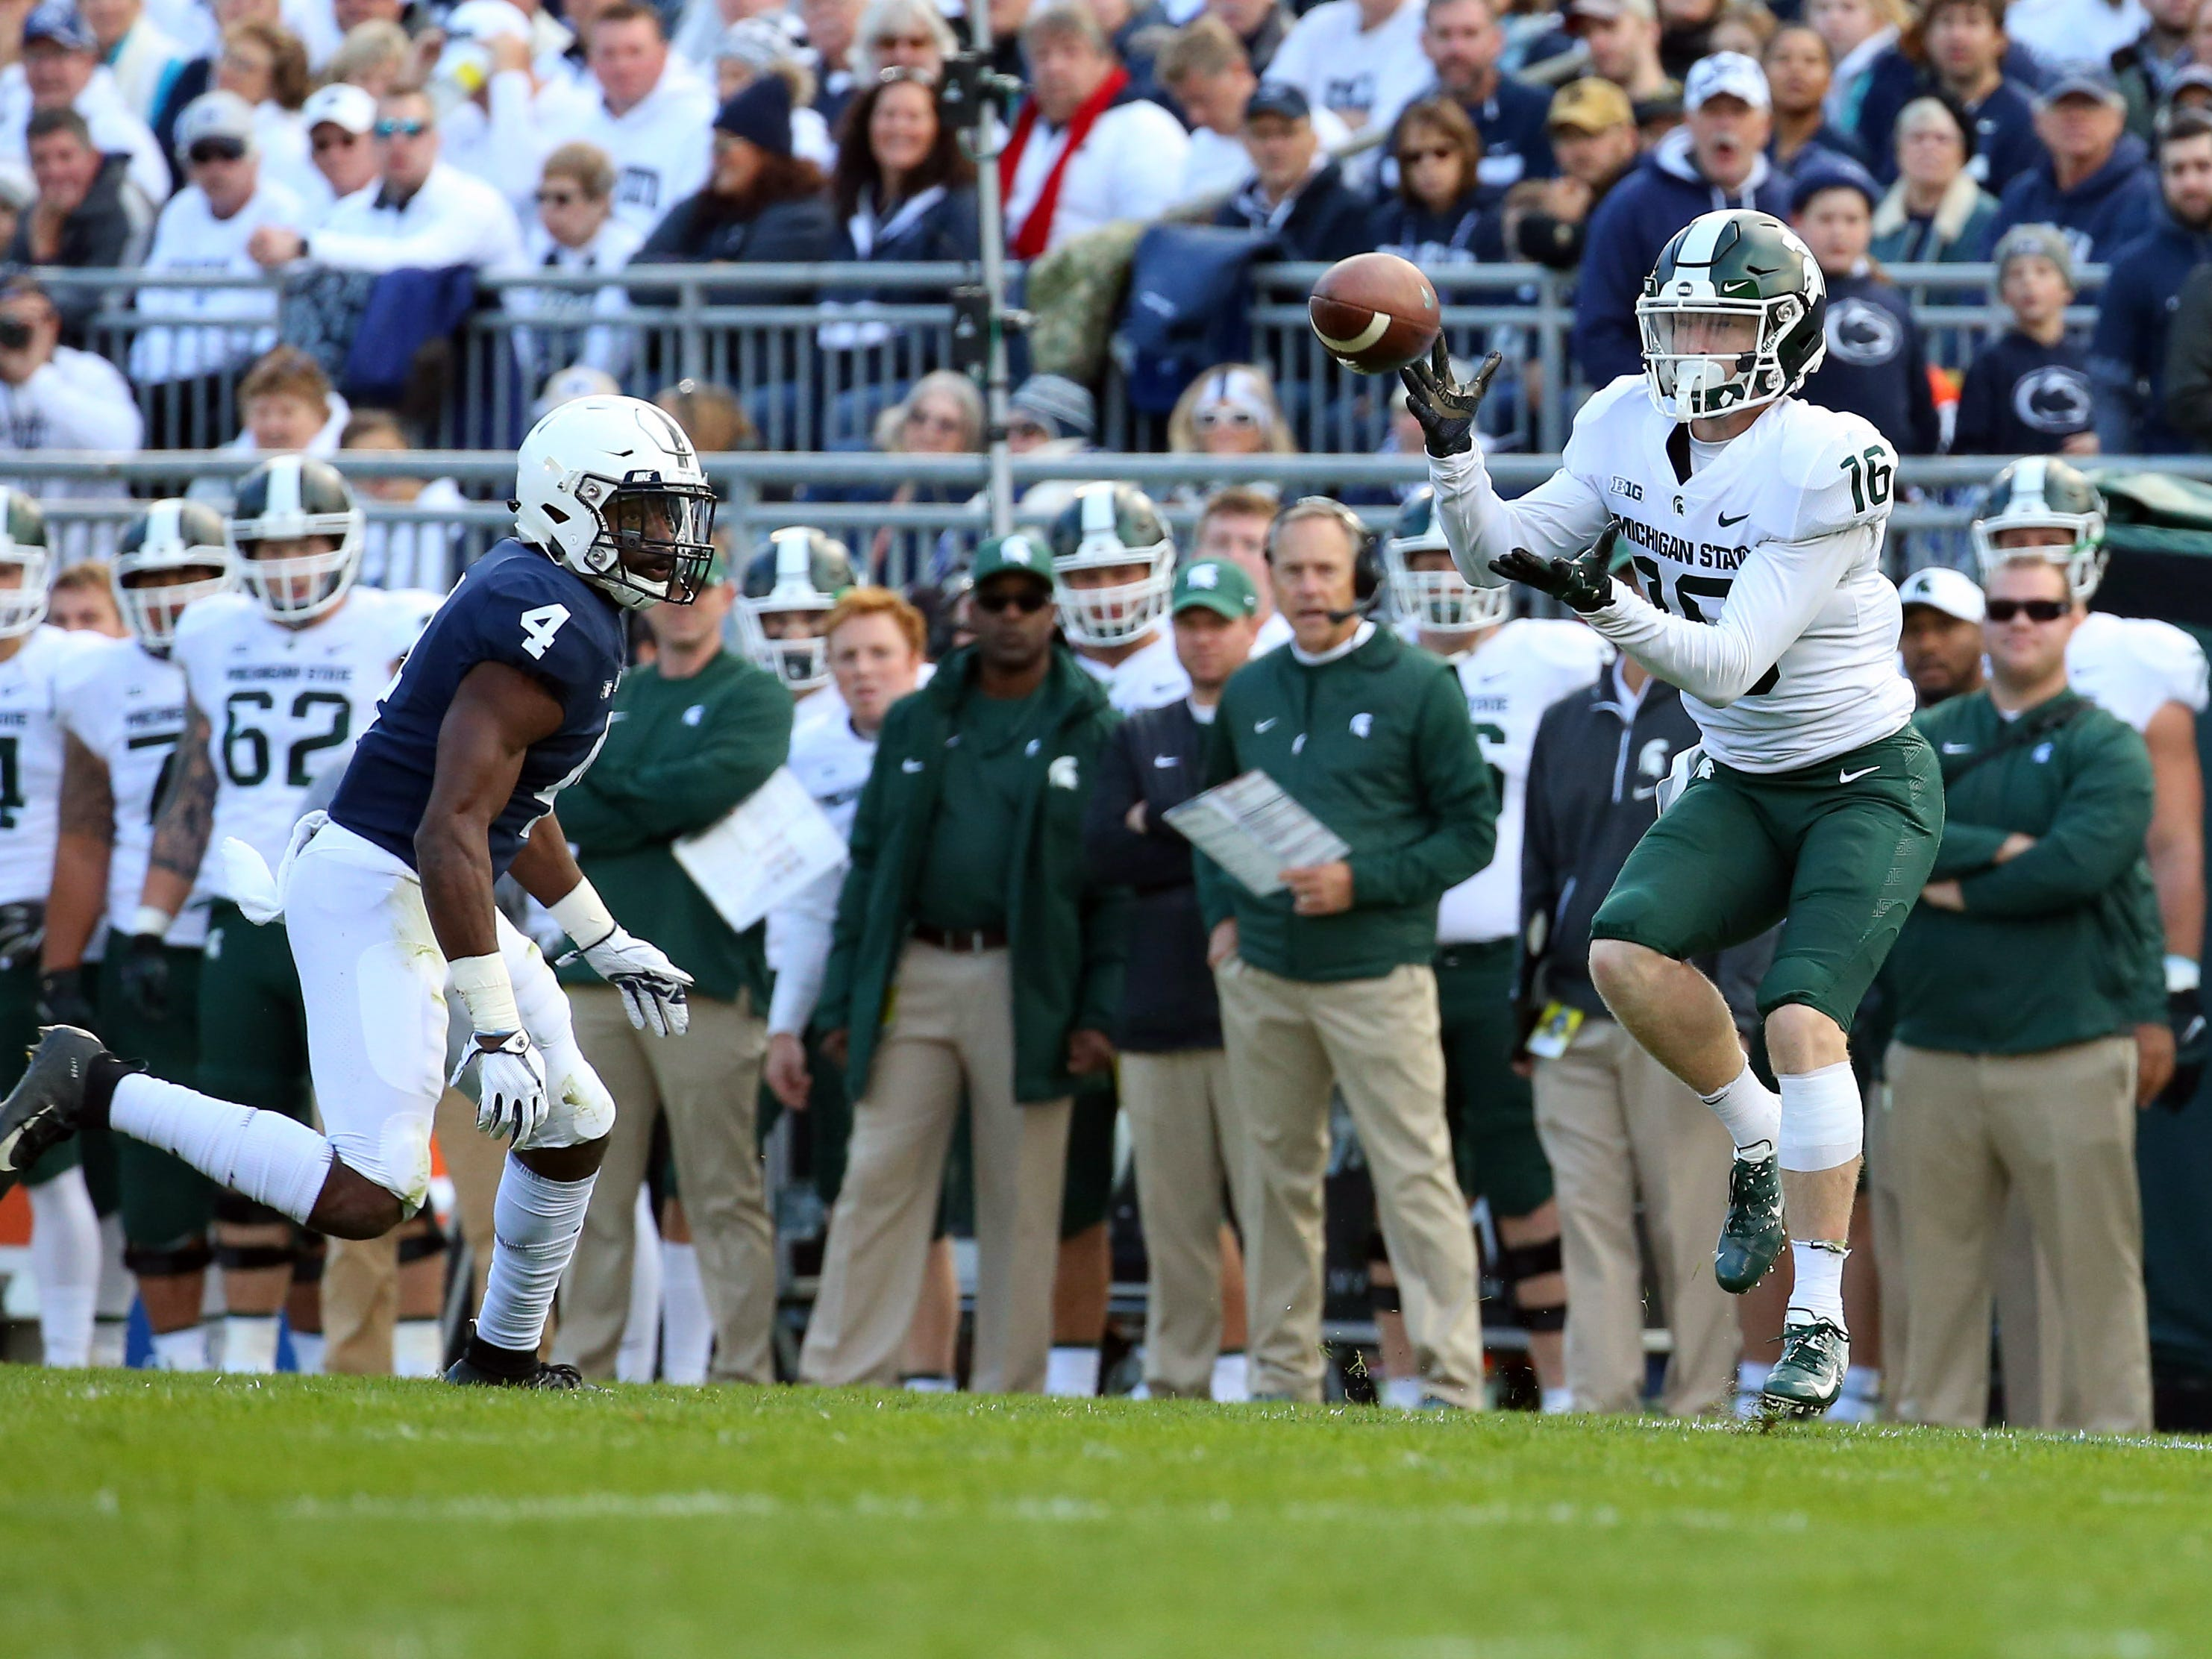 Michigan State Spartans wide receiver Brandon Sowards (16) catches a pass as Penn State Nittany Lions safety Nick Scott (4) defends during the first quarter at Beaver Stadium.